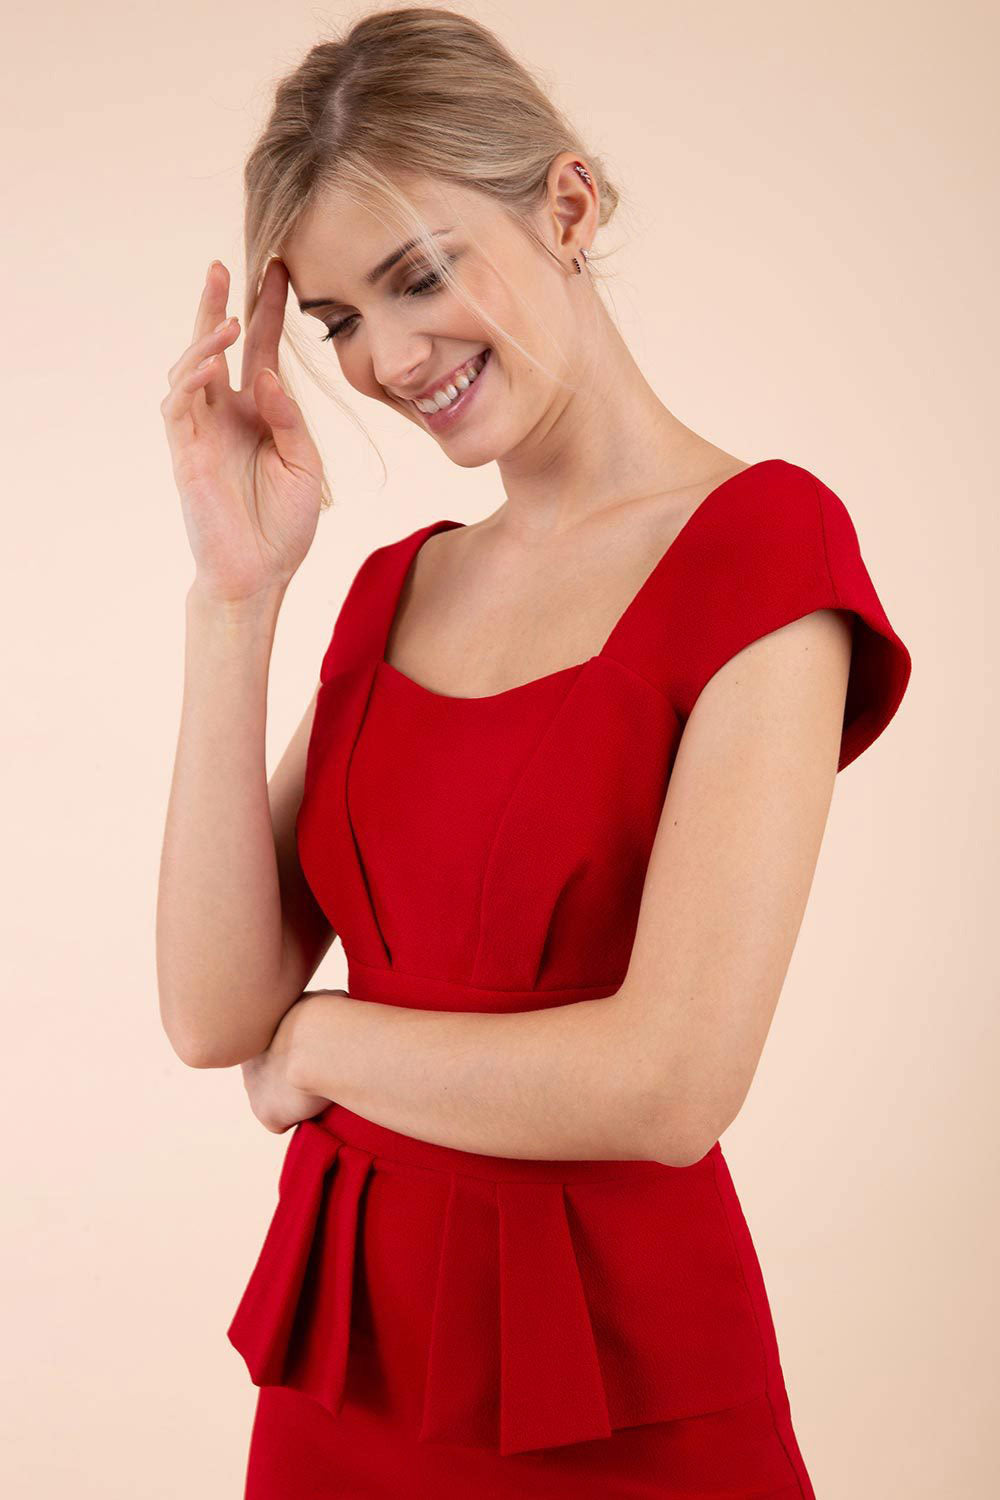 A blonde hair Model smiling is wearing red peplum short sleeve dress from Diva Catwalk